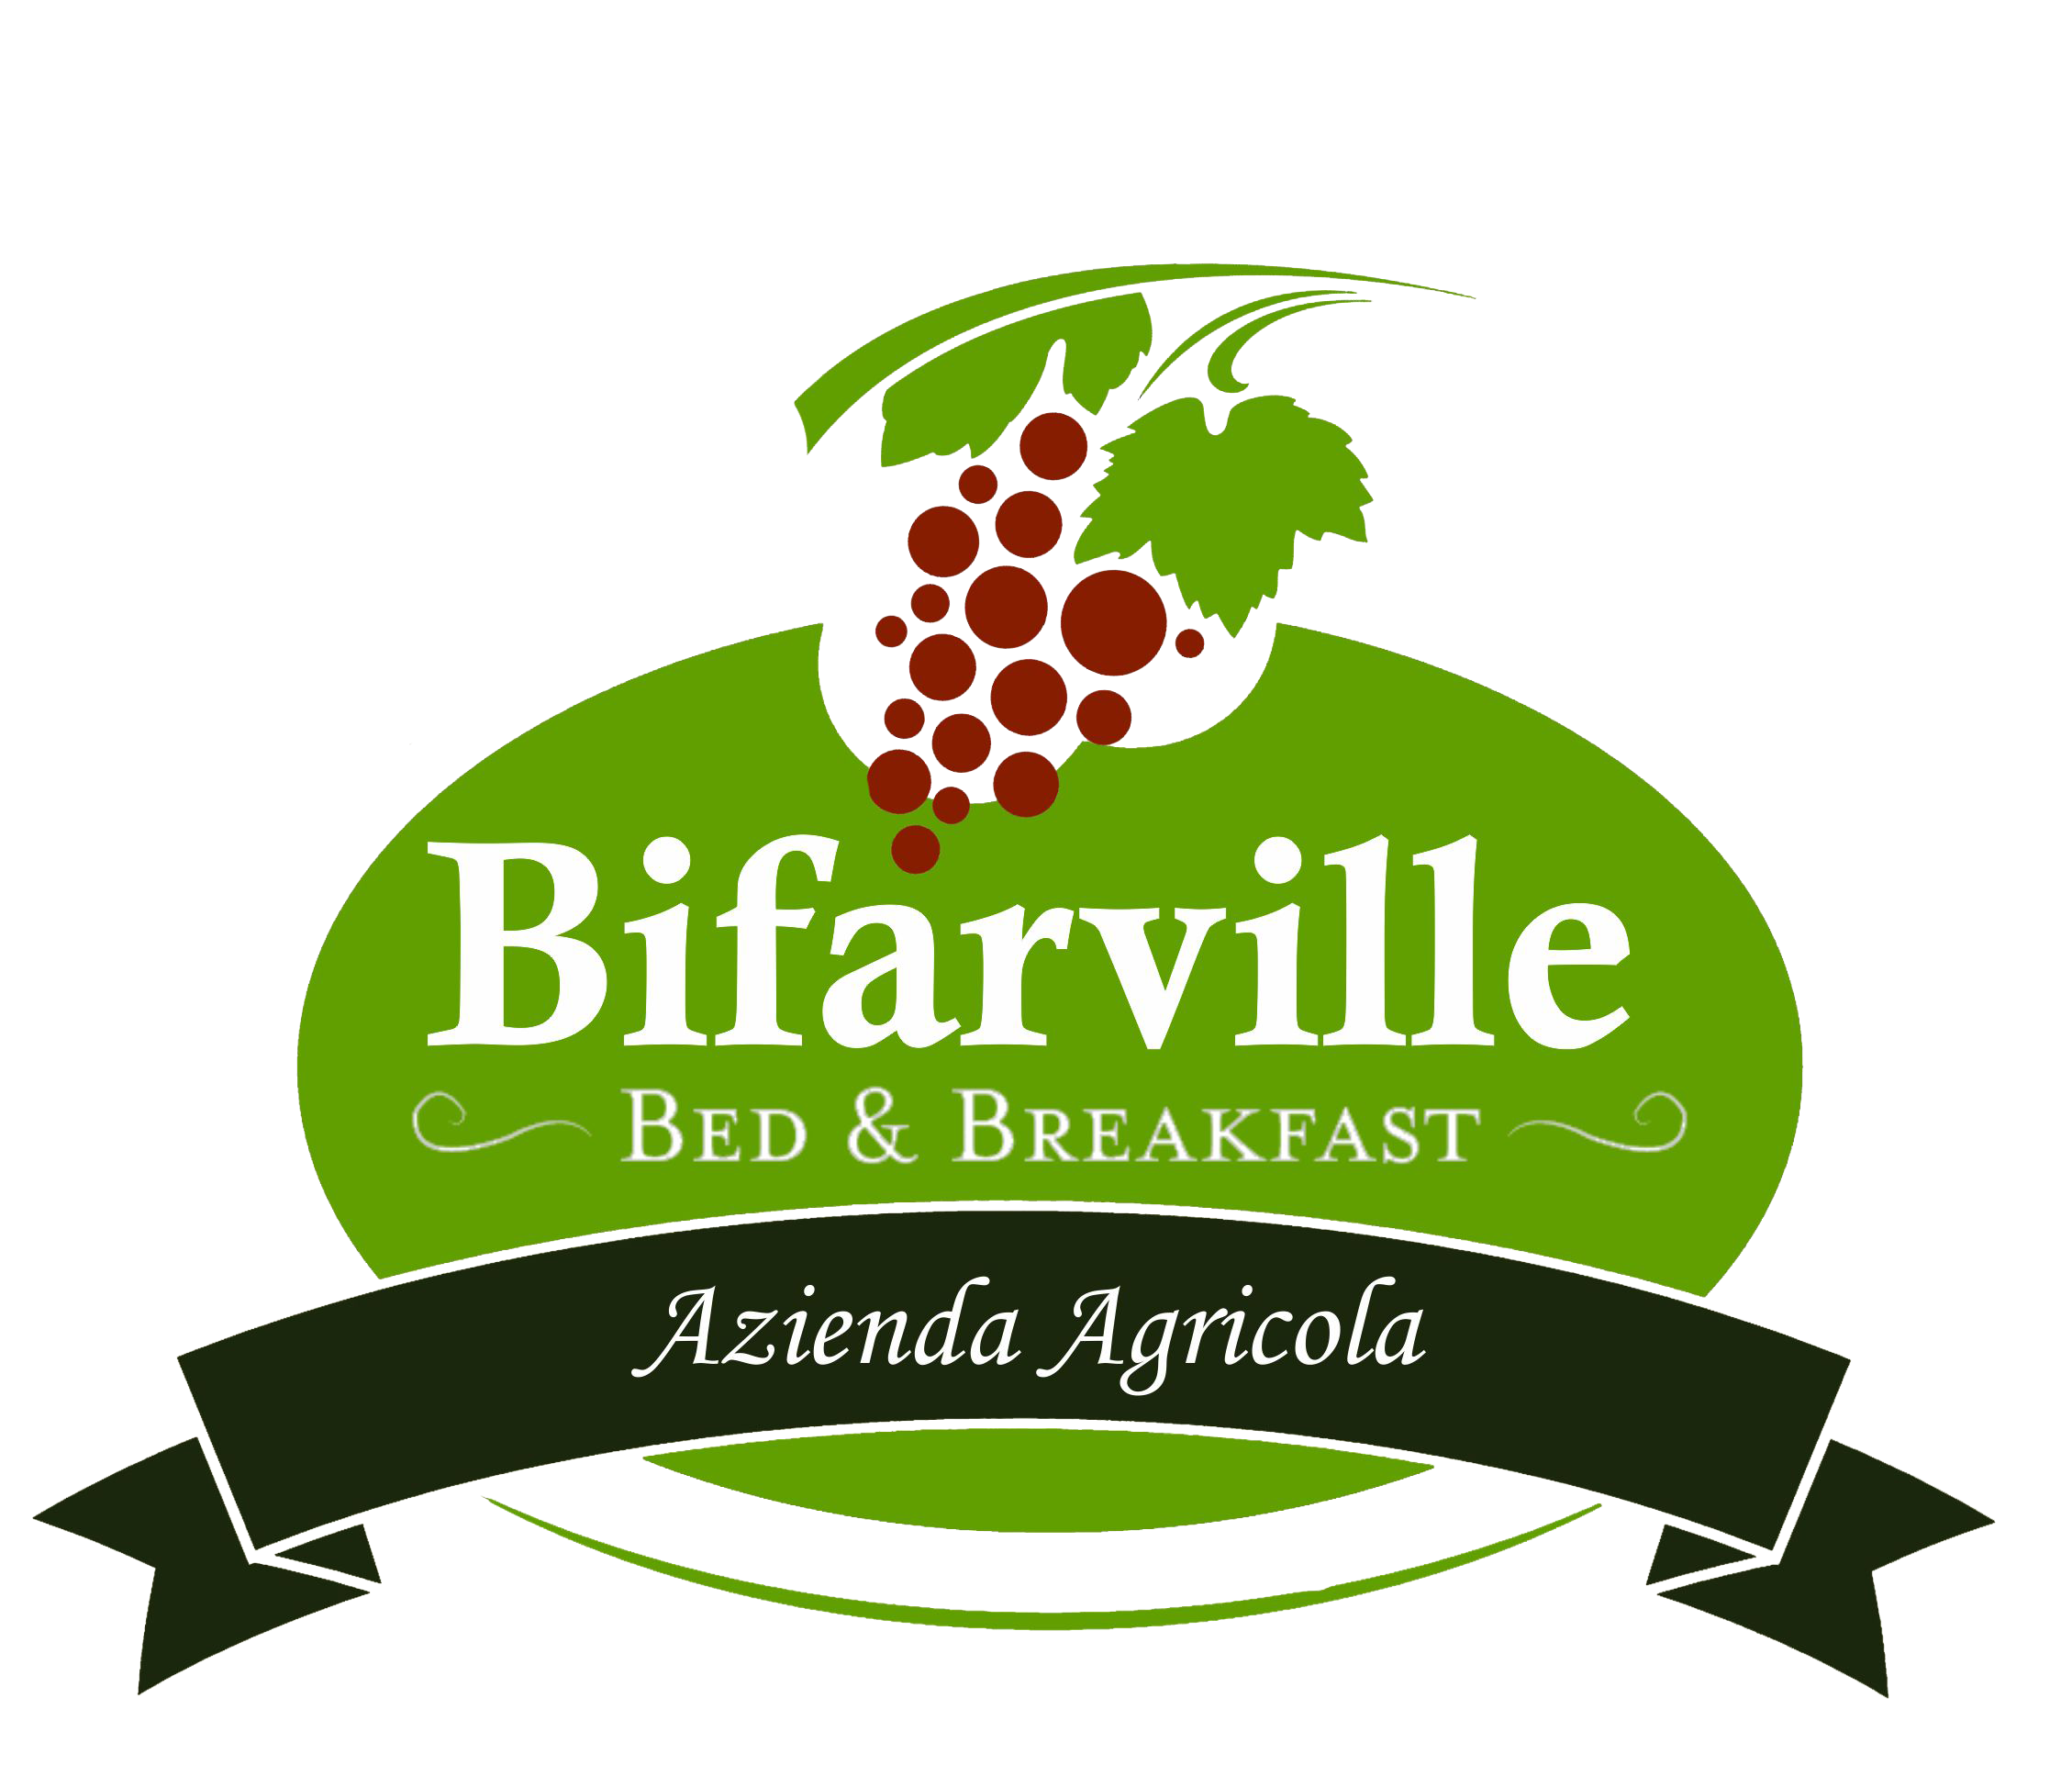 BIFARVILLE BED AND BREAKFAST AZIENDA AGRICOLA - logo